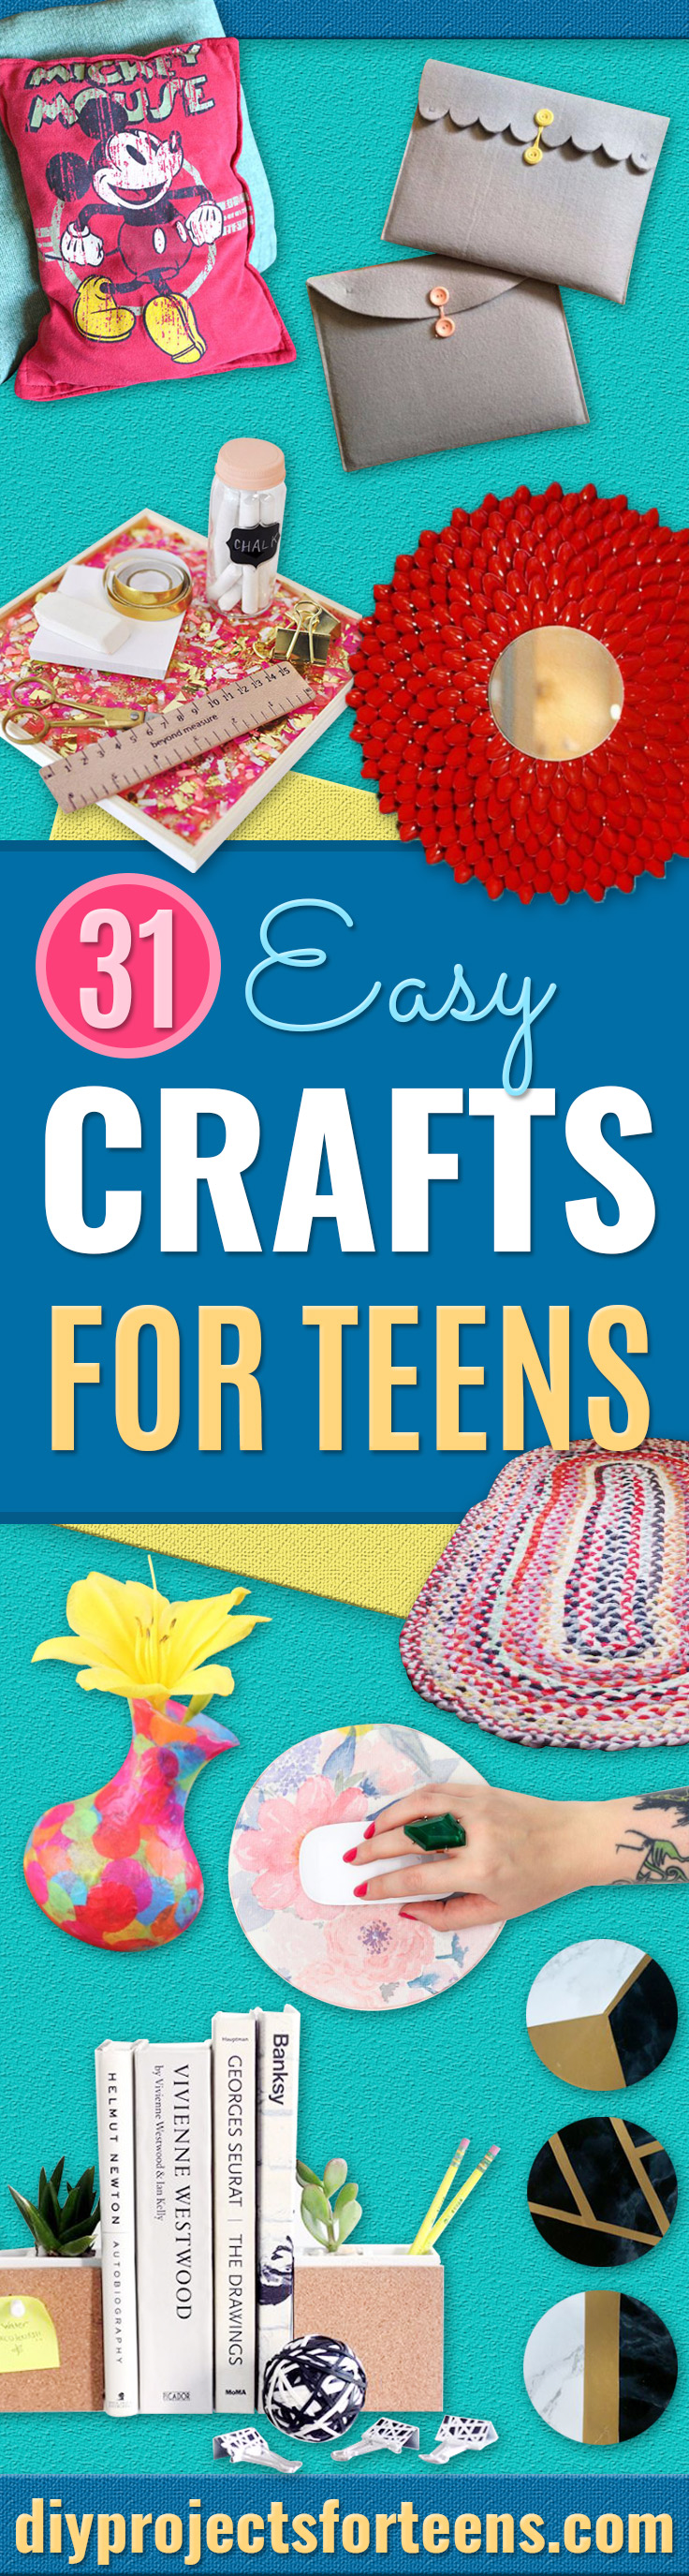 Easy Crafts for Teens - Cheap and Easy DIY Projects for Teenagers - Learn Basic Craft Techniques and Tutorials for Learning The Basics for Do It Yourself Projects and Fun Crafts - Easy Step by Step Tutorials for Making Pom Poms, Using a Glue Gun, Painting How To and More - Cool Ideas for Teens, Teenagers and Adults - Cheap Arts and Crafts Ideas and Tips